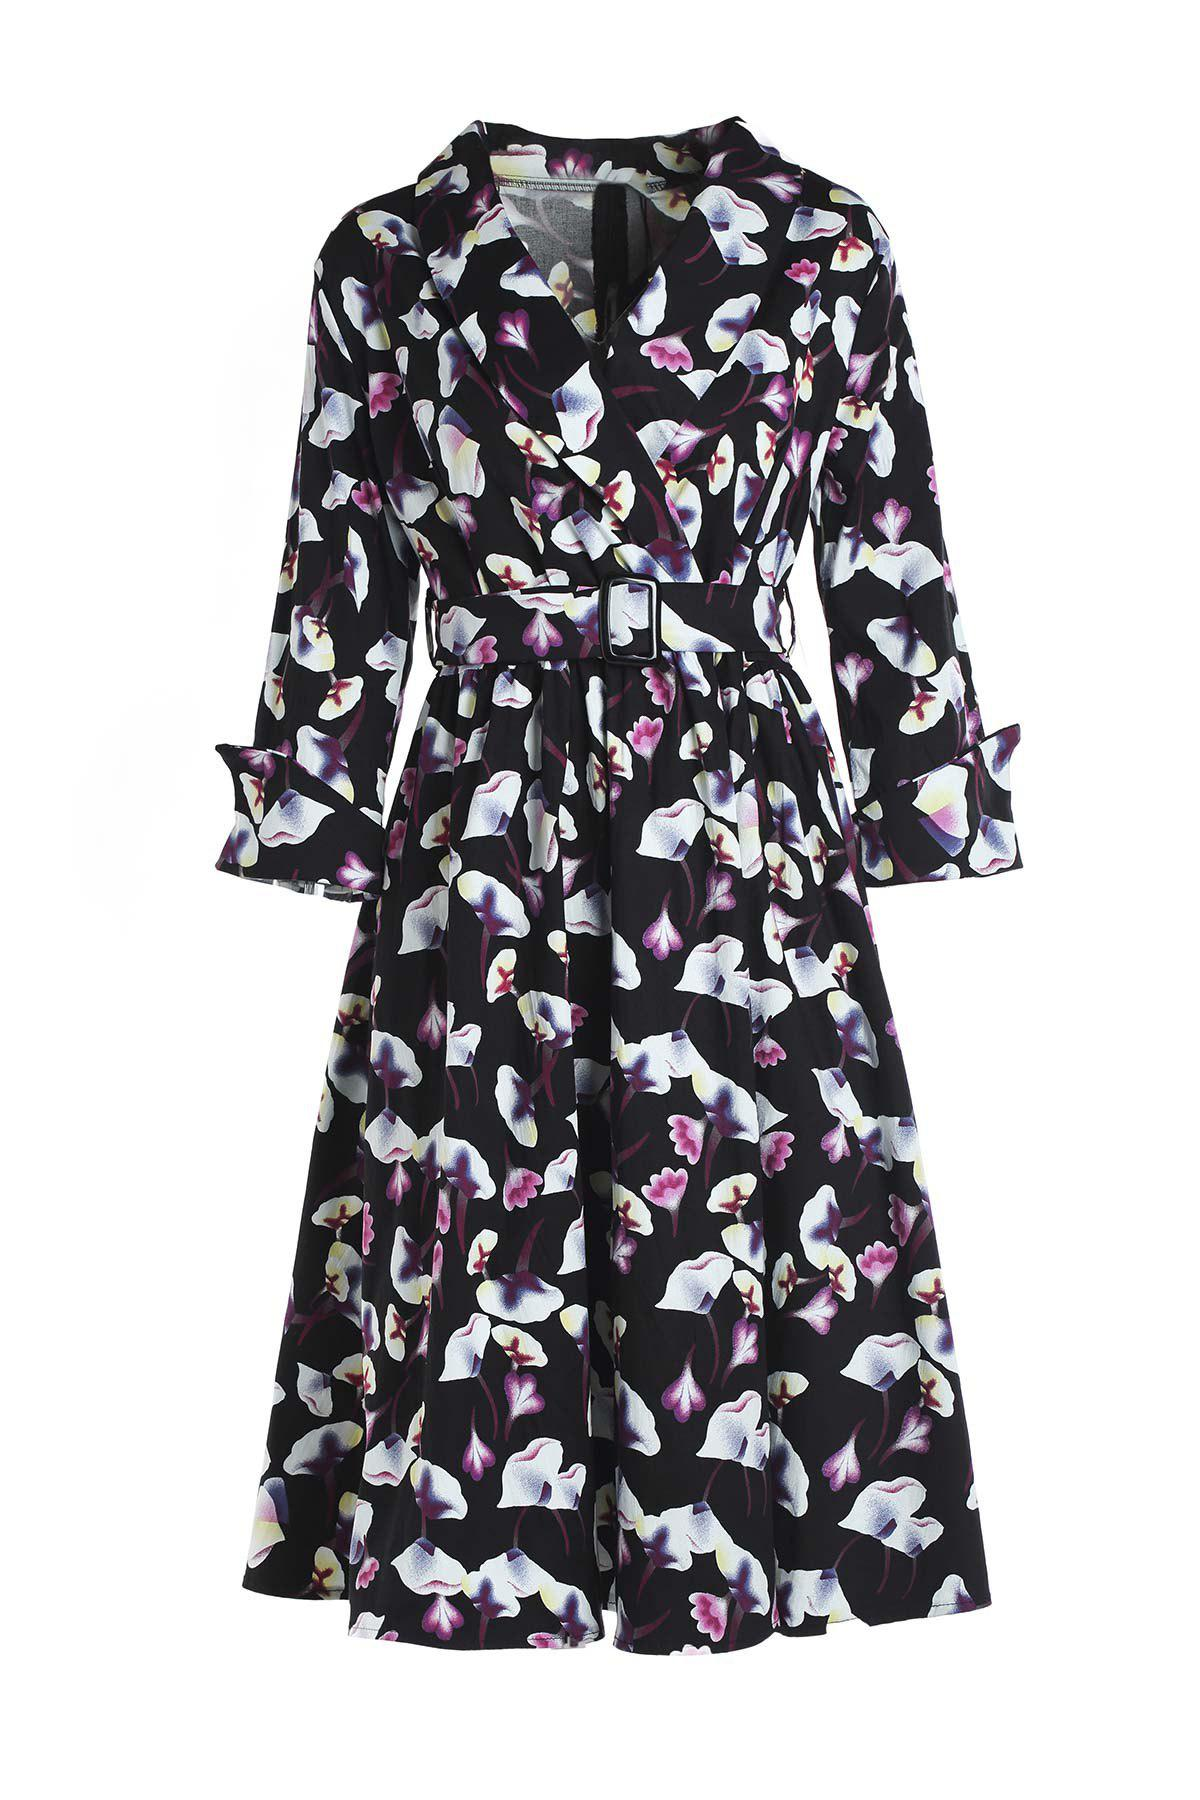 Vintage Style 3/4 Sleeve Shawl Collar Floral Print Women's Dress